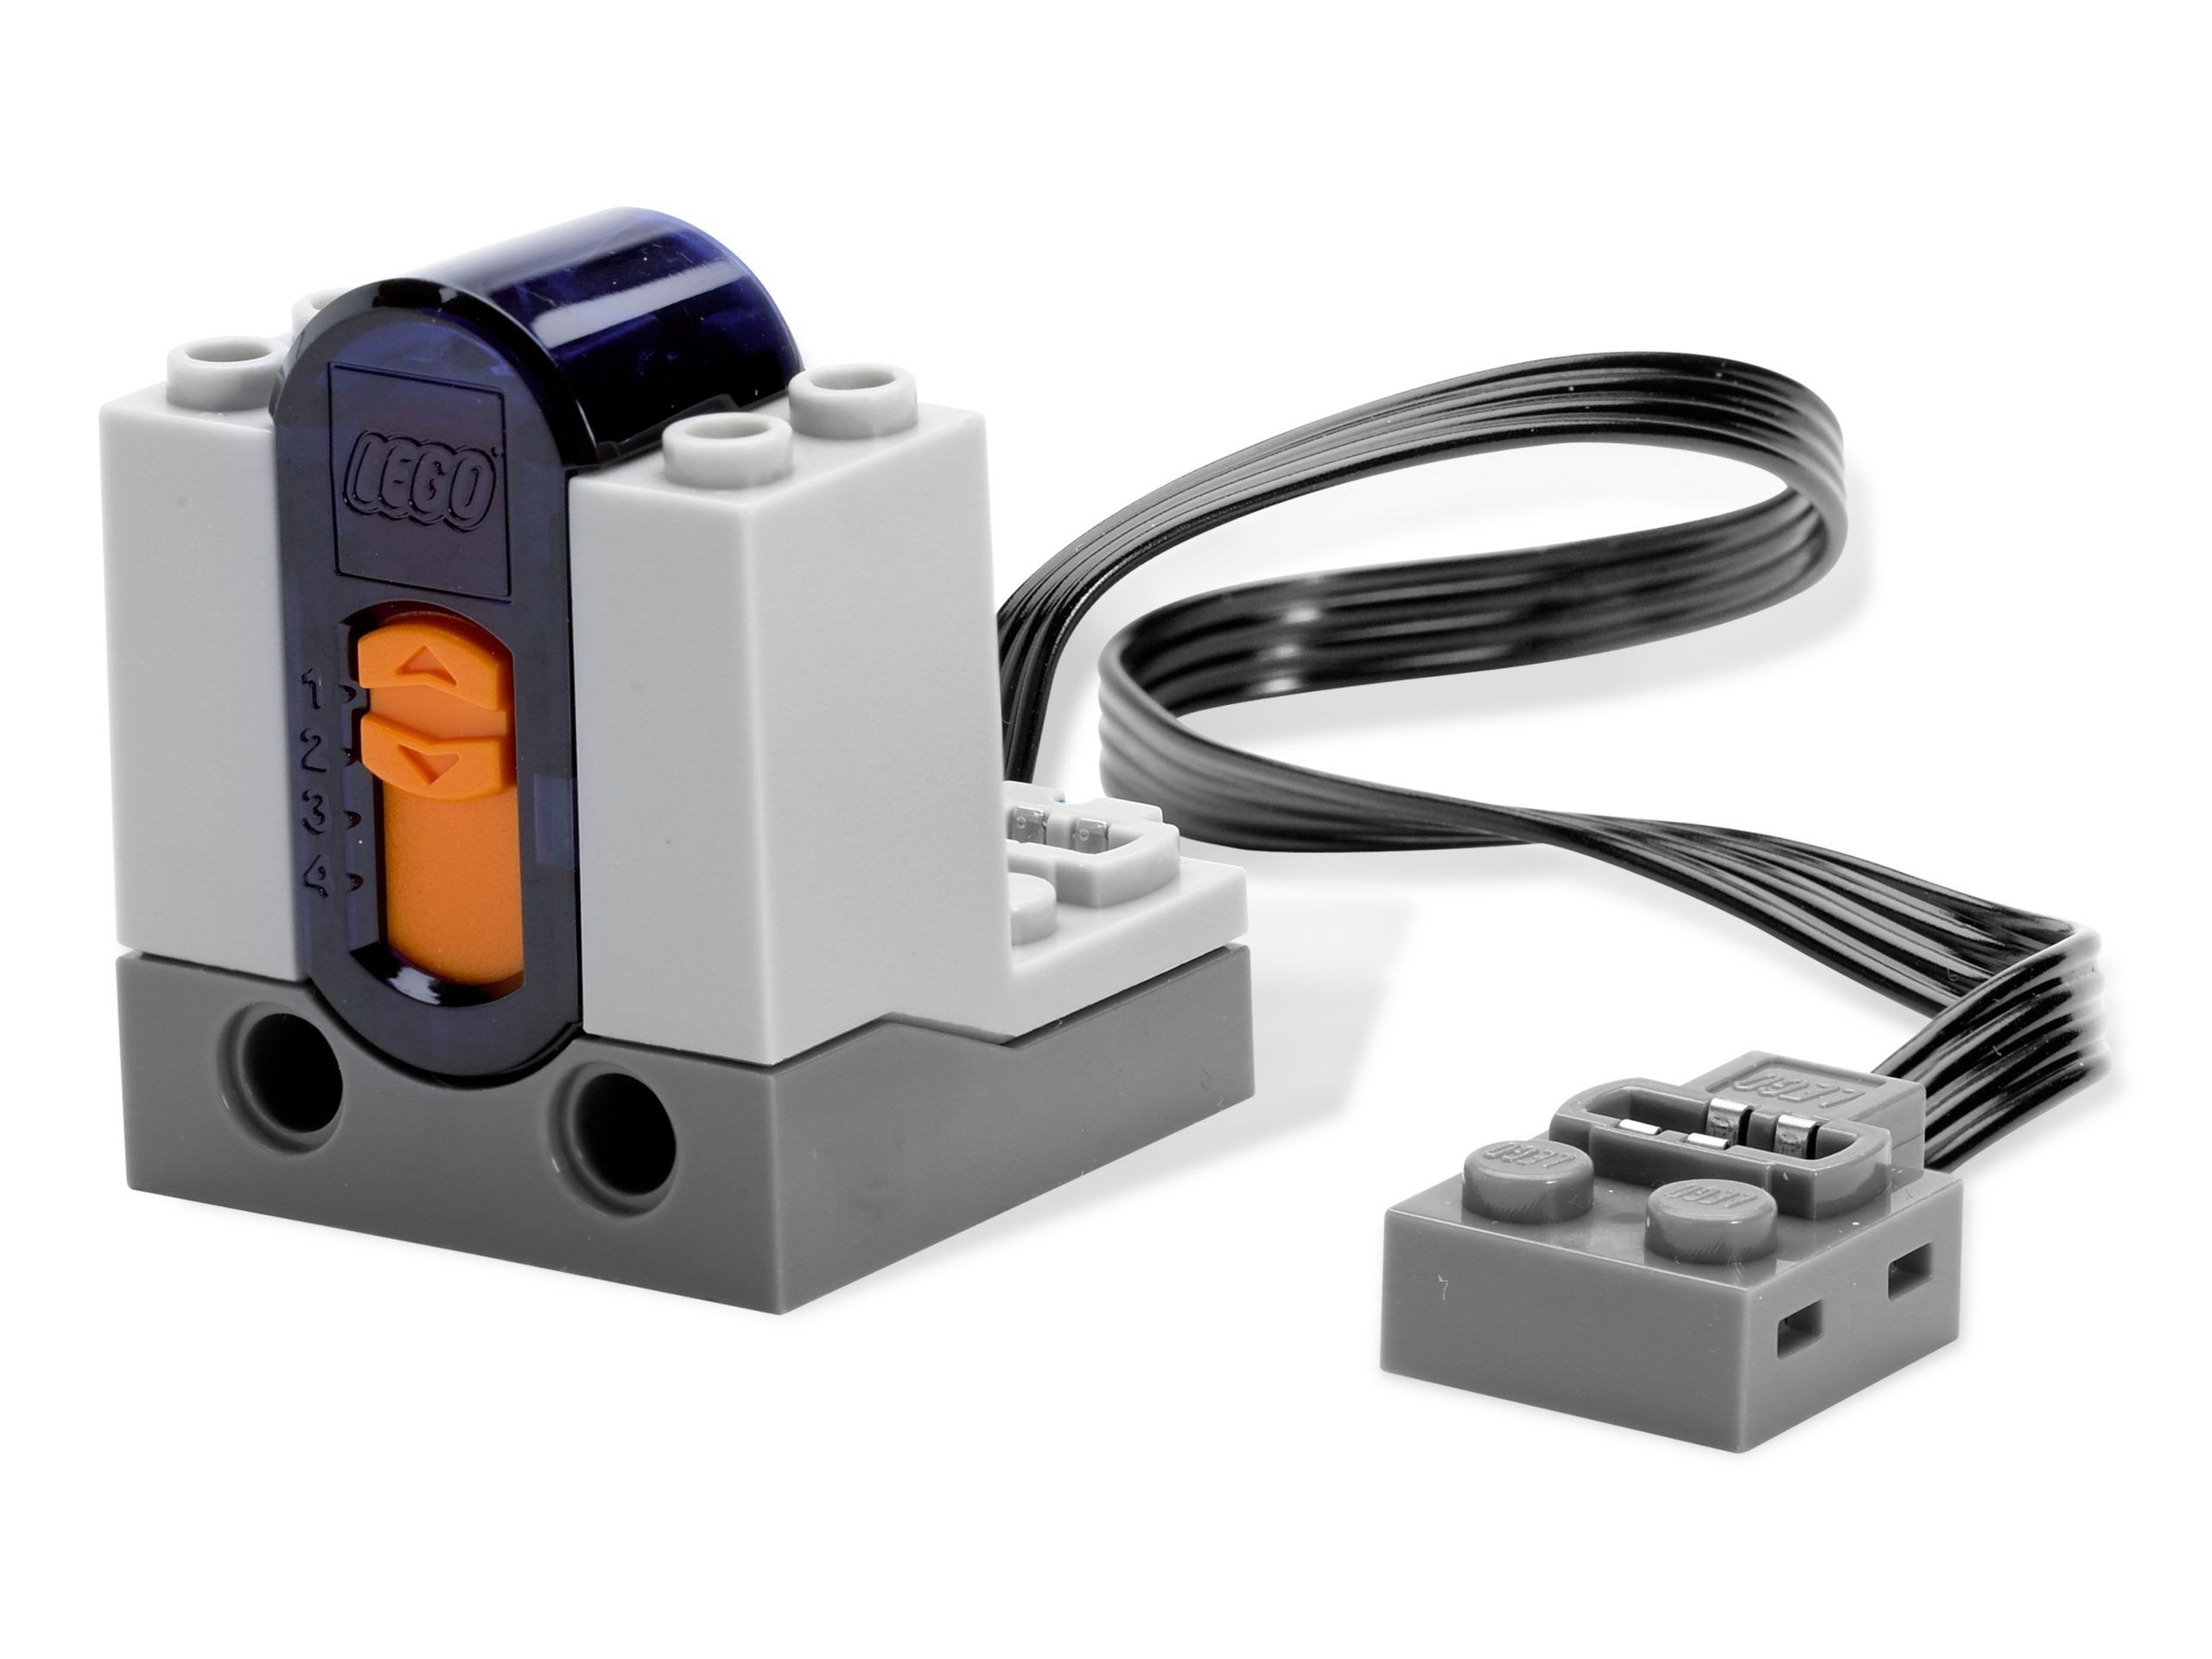 lego 8884 power functions infrarot empfanger scaled